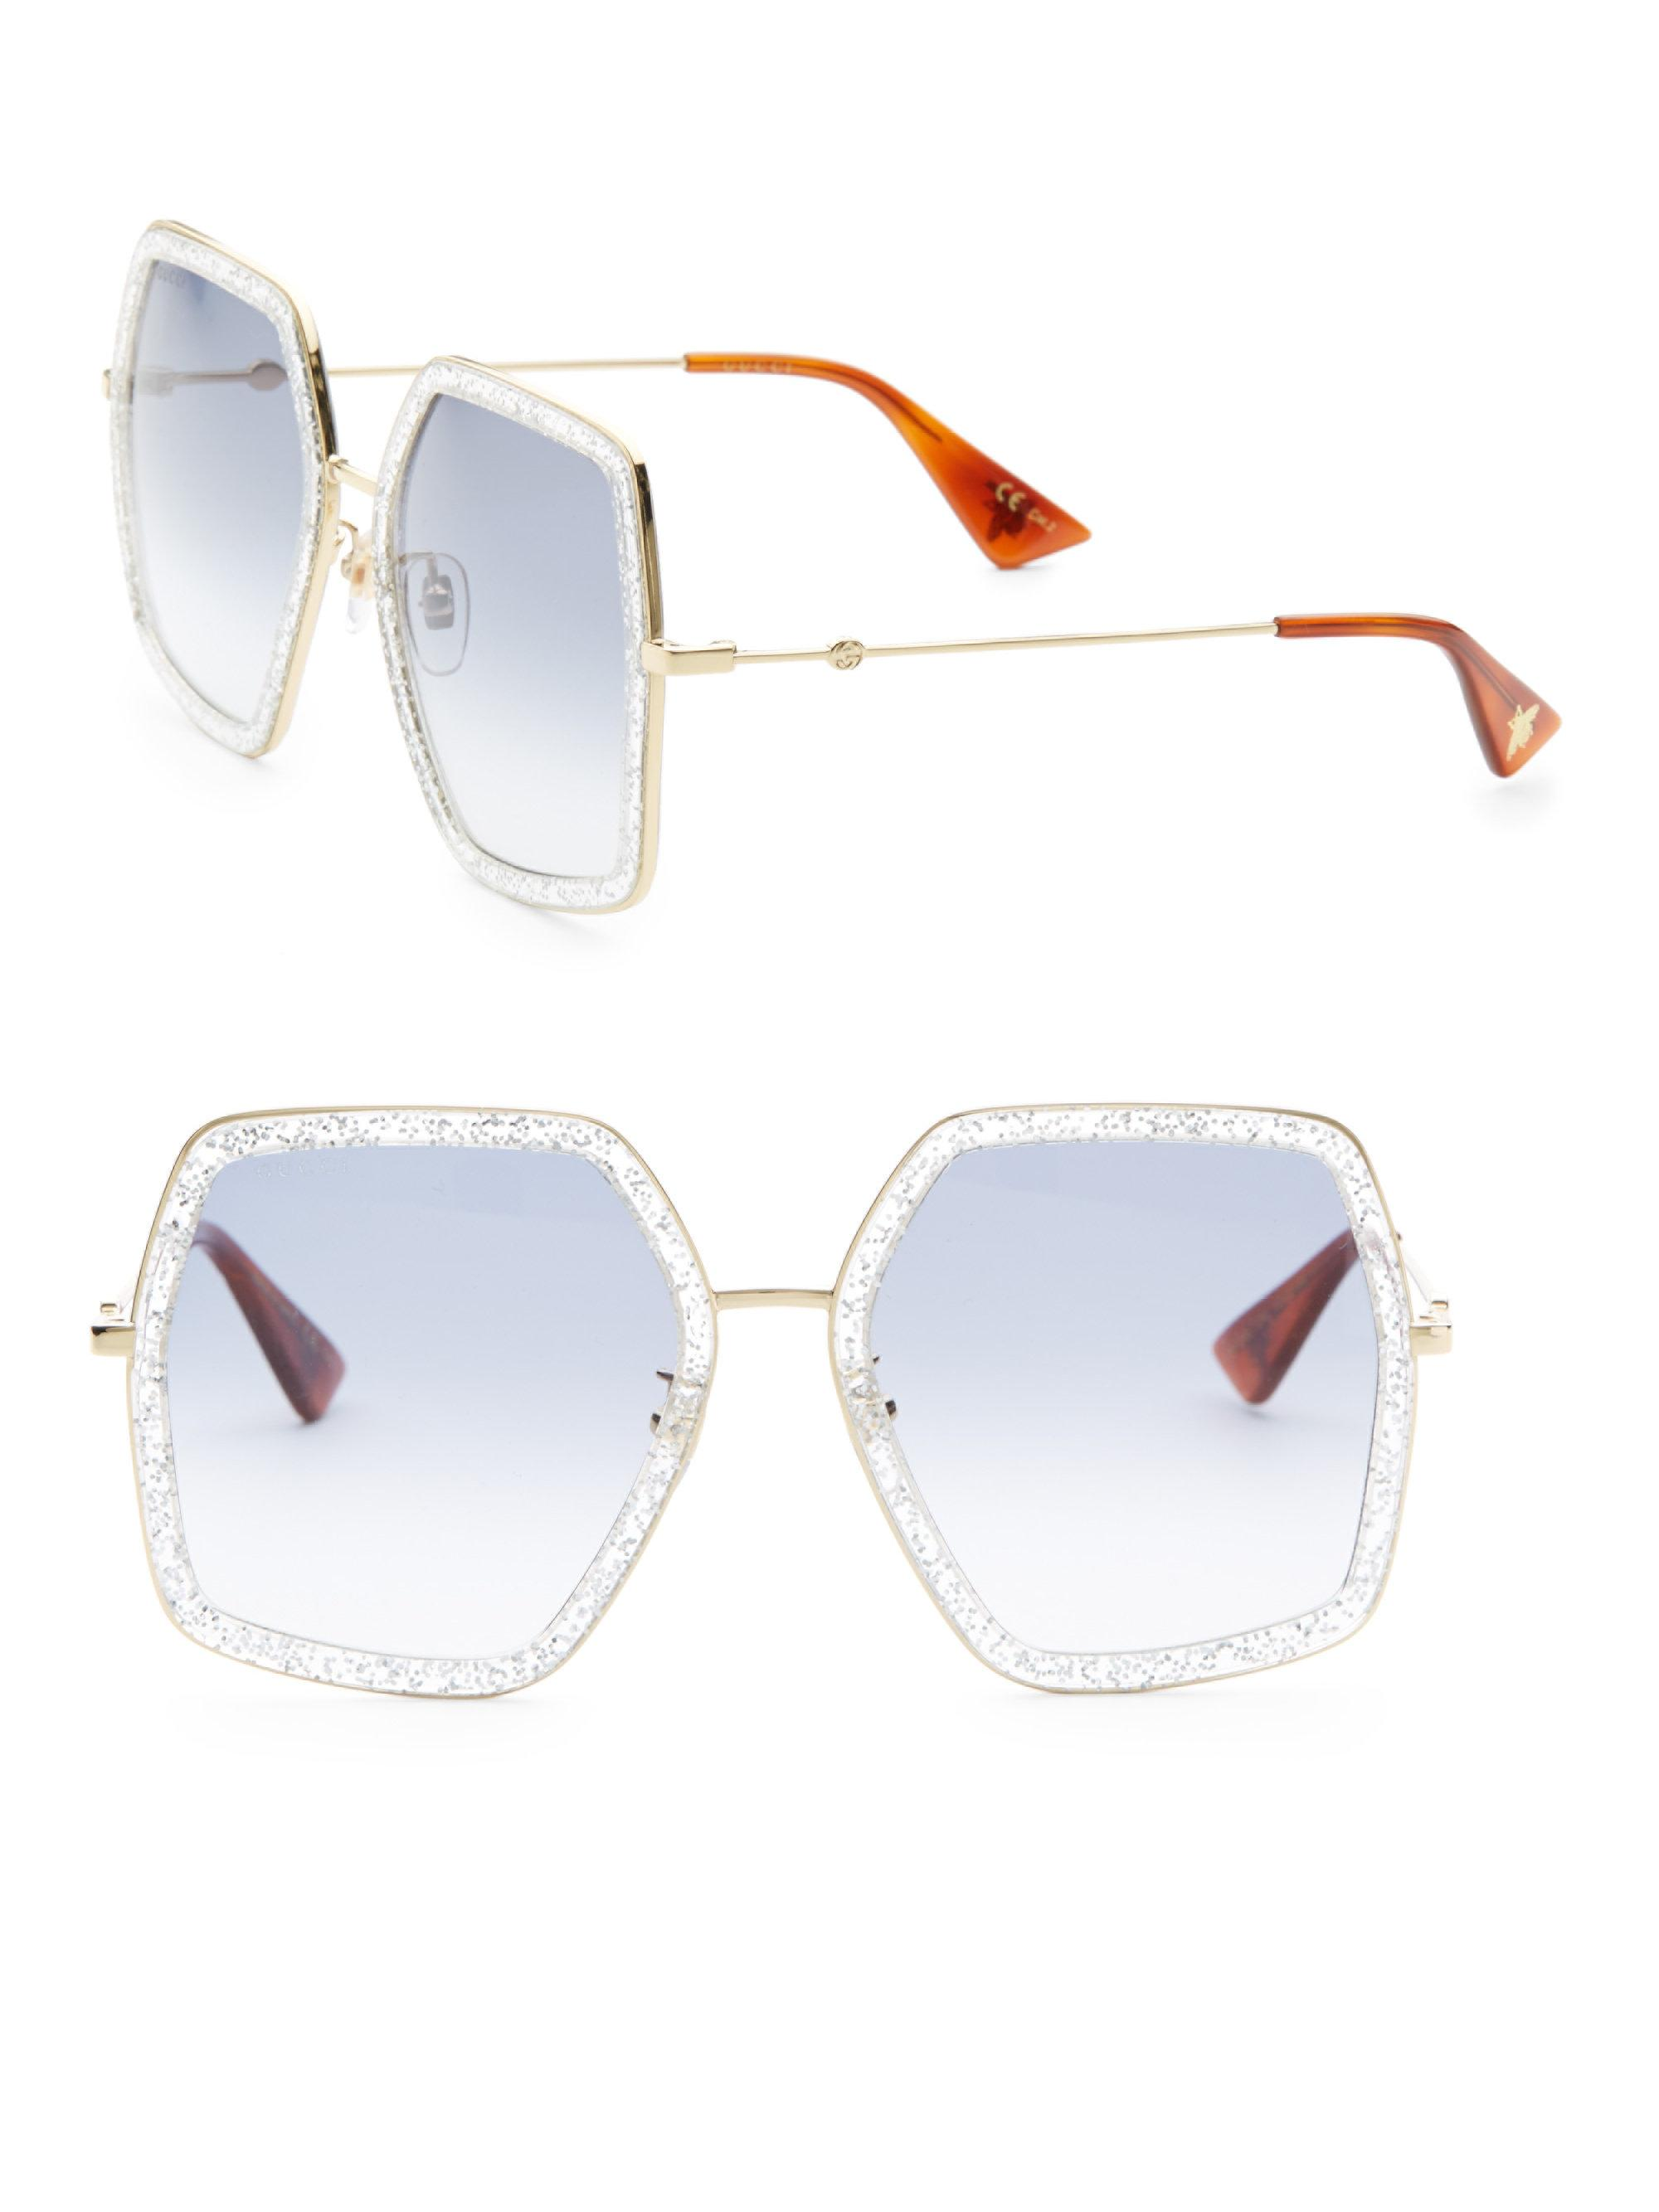 399f58dc5d Gucci Sunglasses Saks Fifth Avenue